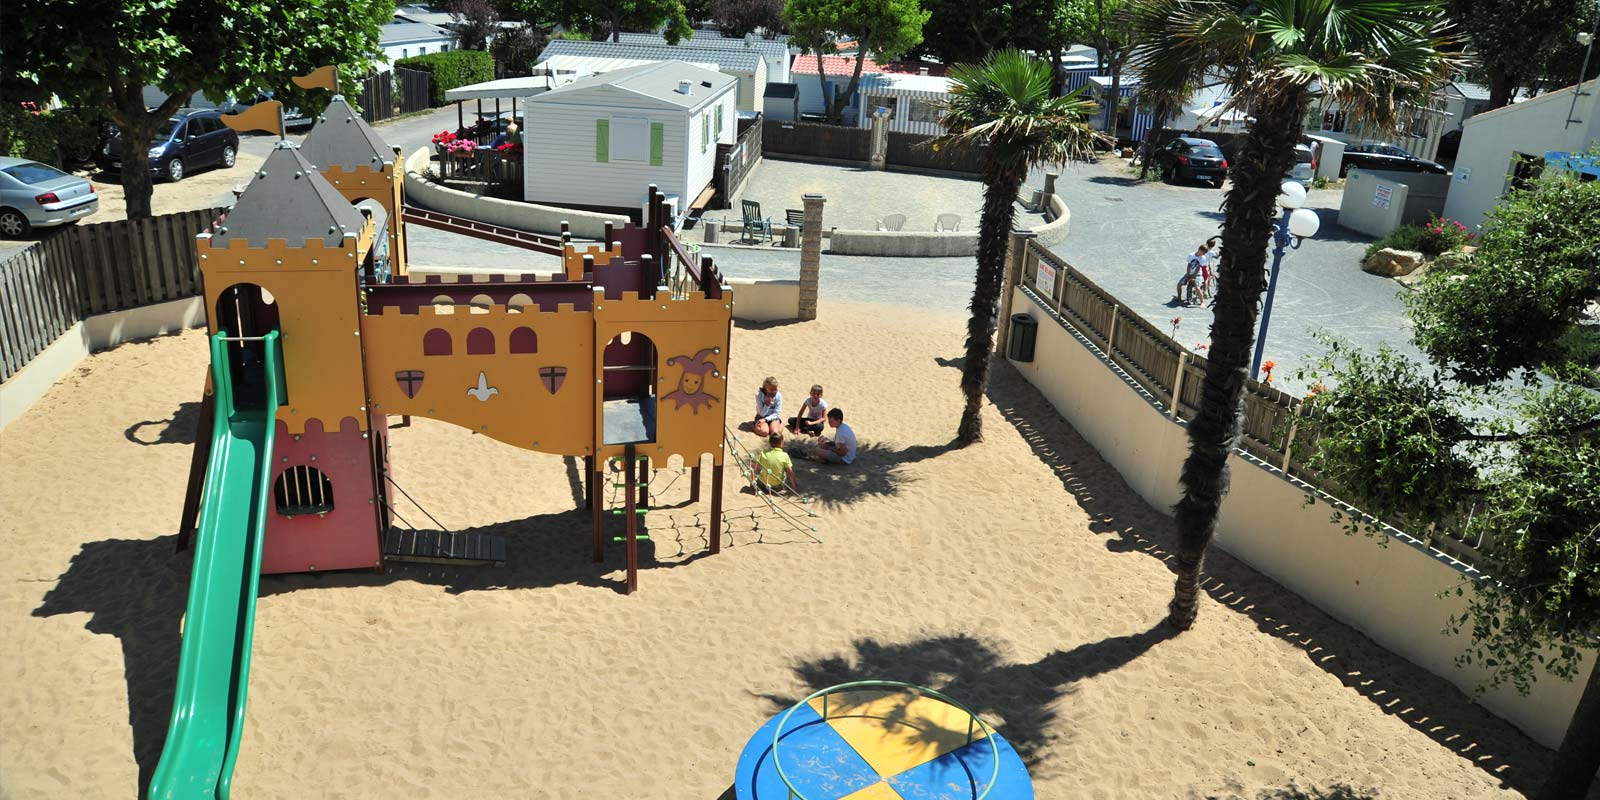 Aerial view of the campsite playground at Saint-Hilaire in Vendée